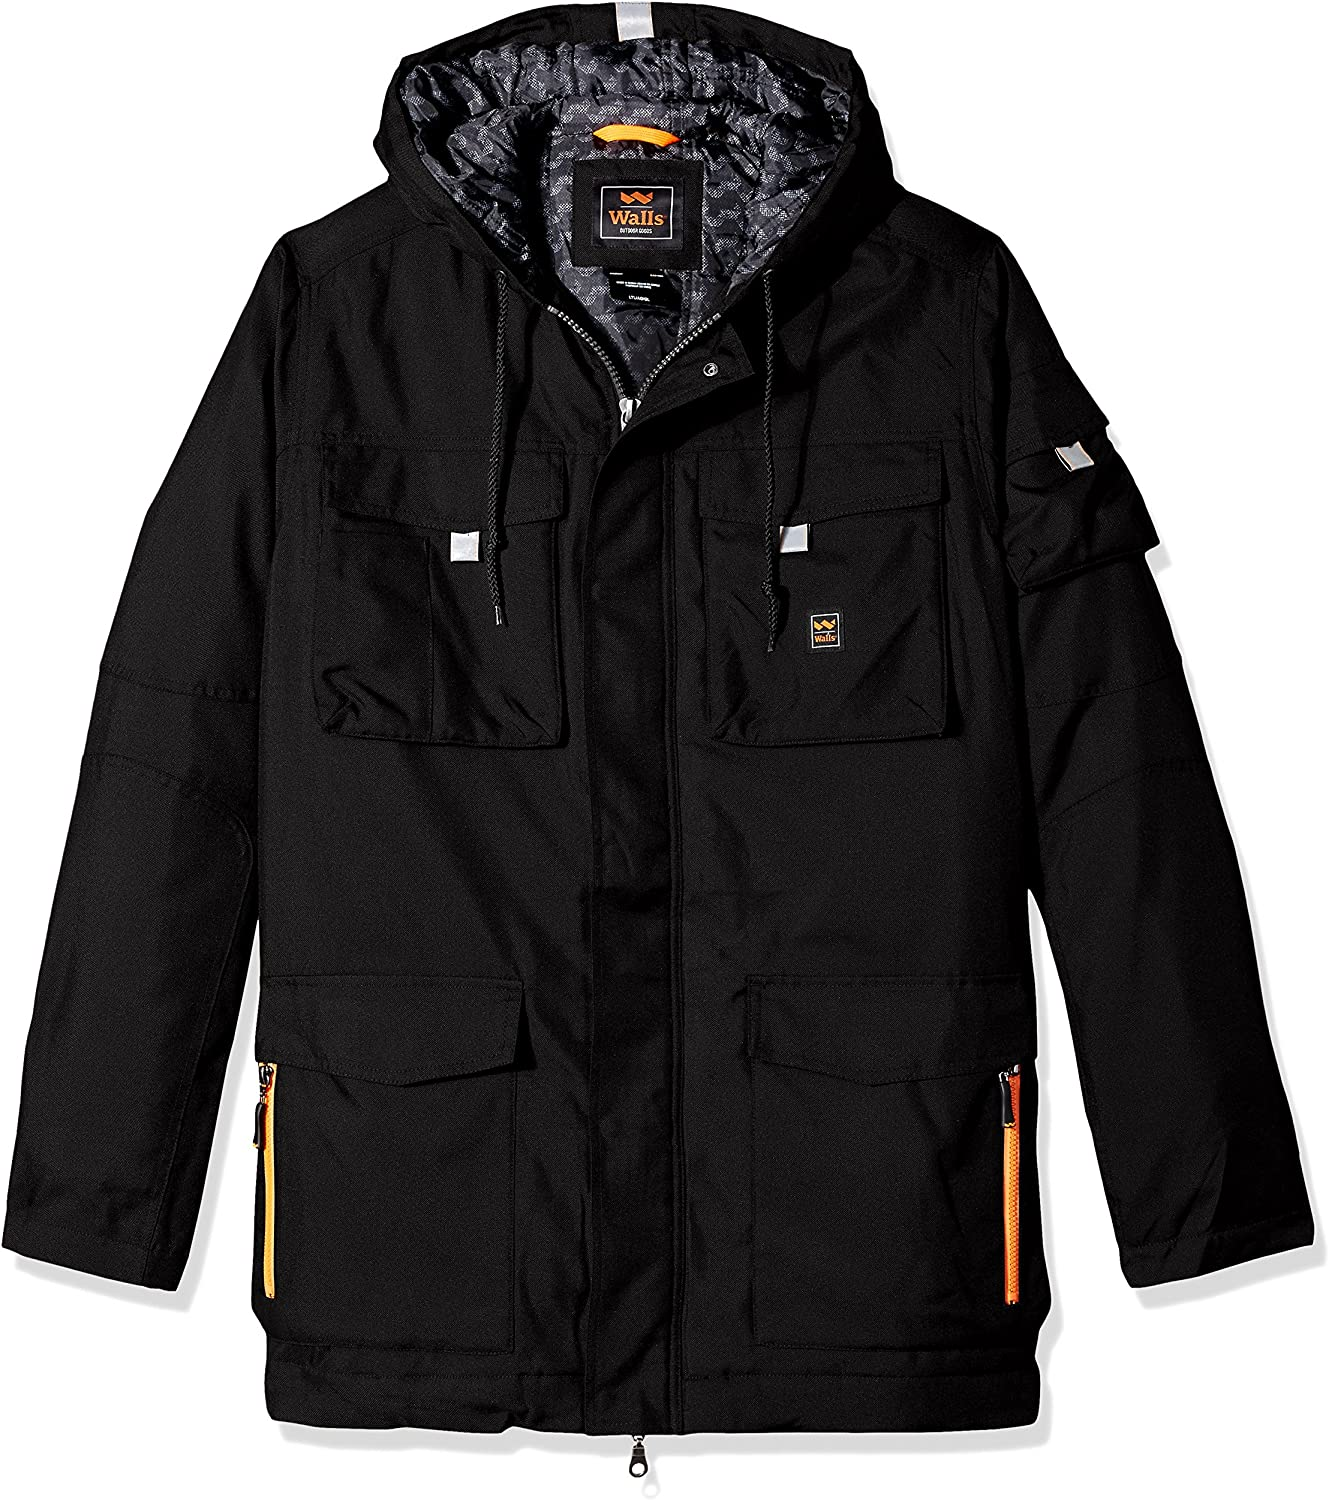 Walls Mens Cut and Shoot Modern Work Hooded Coat Big-Tall